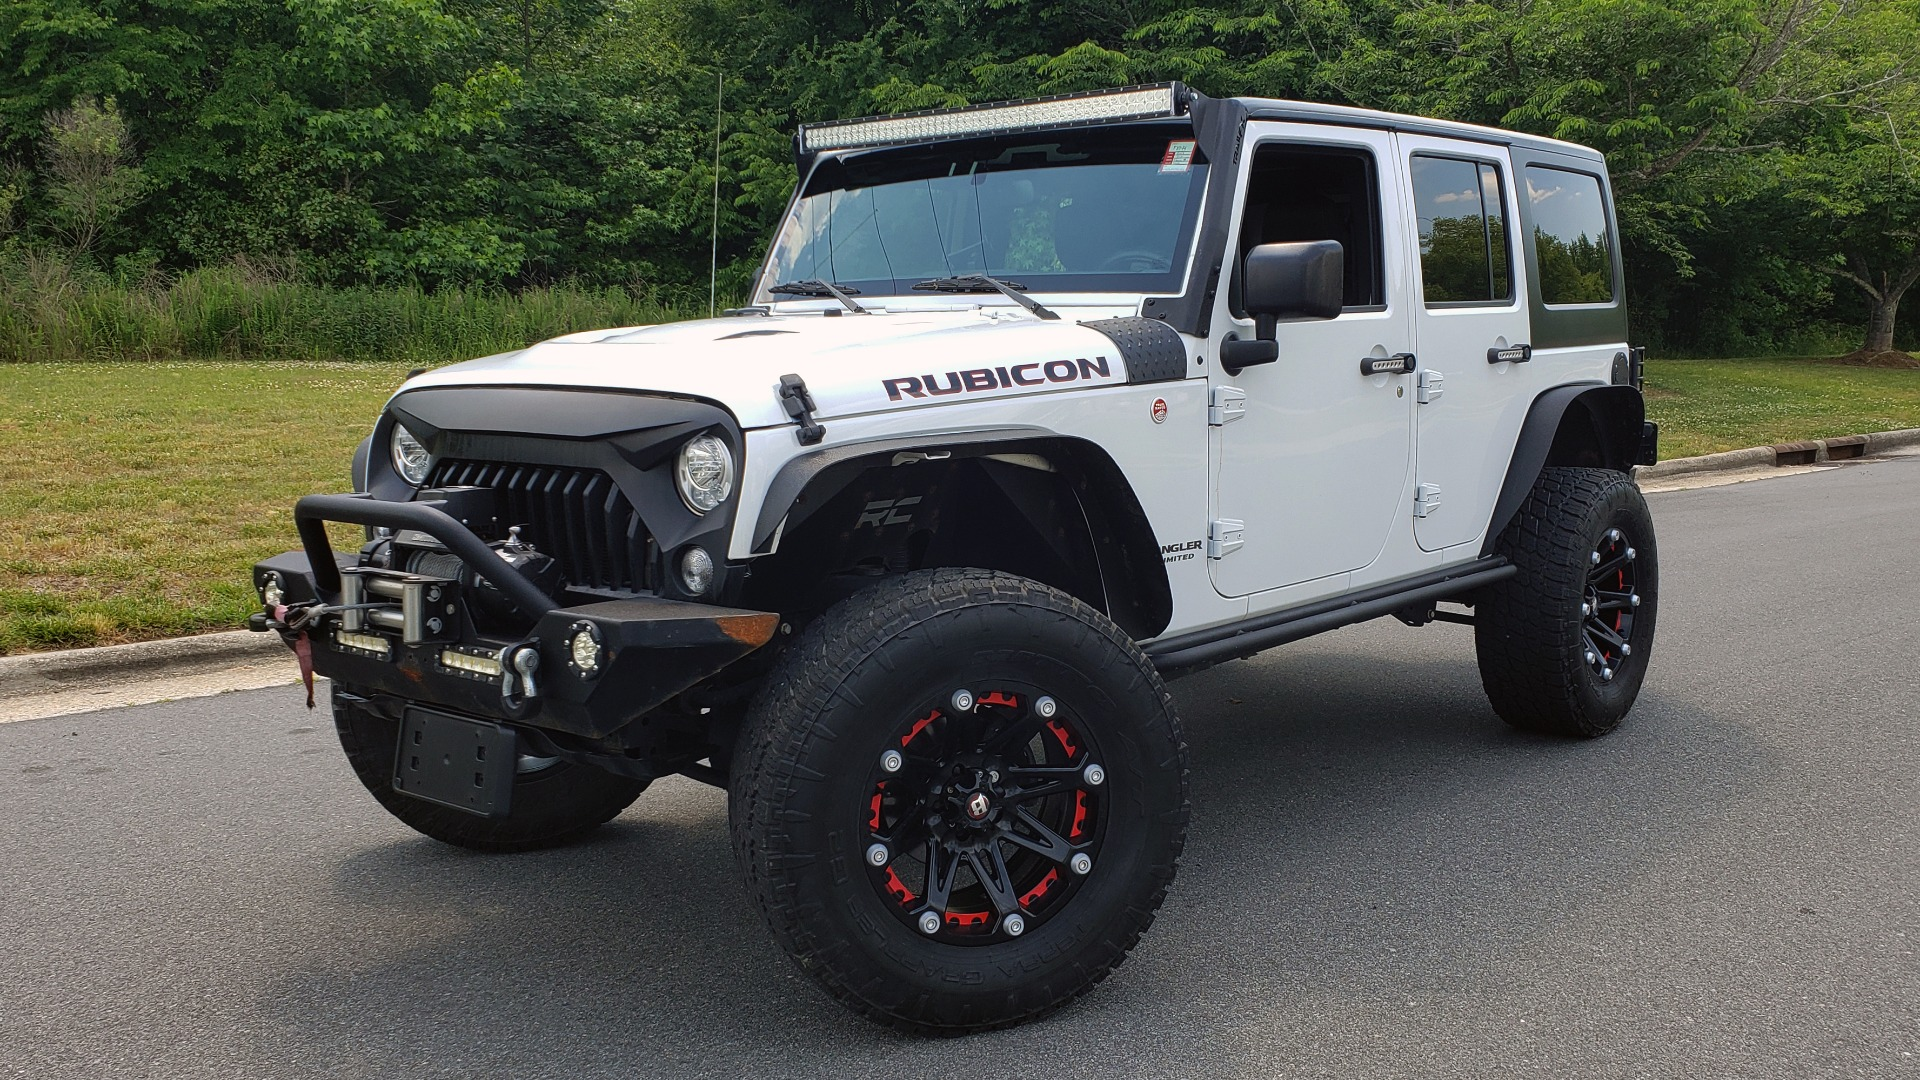 Used 2017 Jeep WRANGLER UNLIMITED RUBICON HARD ROCK 4X4 / 3.6L V6 / 5-SPD AUTO / NAV / REMOTE START for sale Sold at Formula Imports in Charlotte NC 28227 1